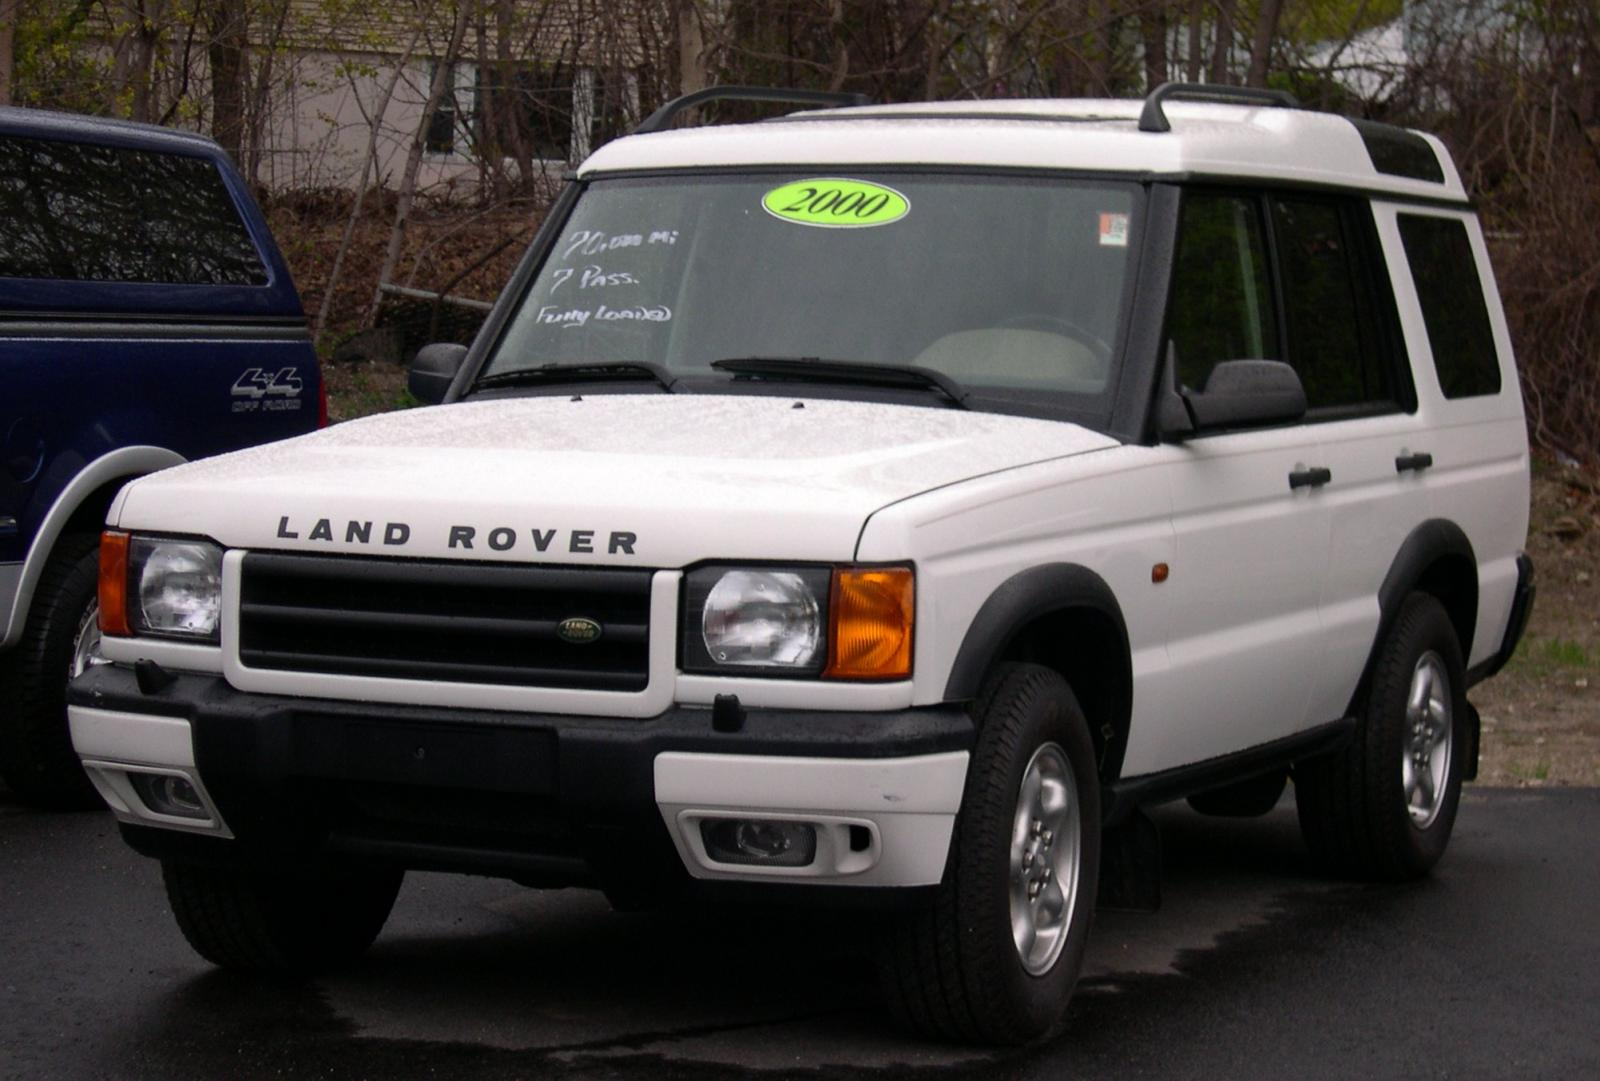 2000 land rover discovery series ii information and photos zombiedrive. Black Bedroom Furniture Sets. Home Design Ideas